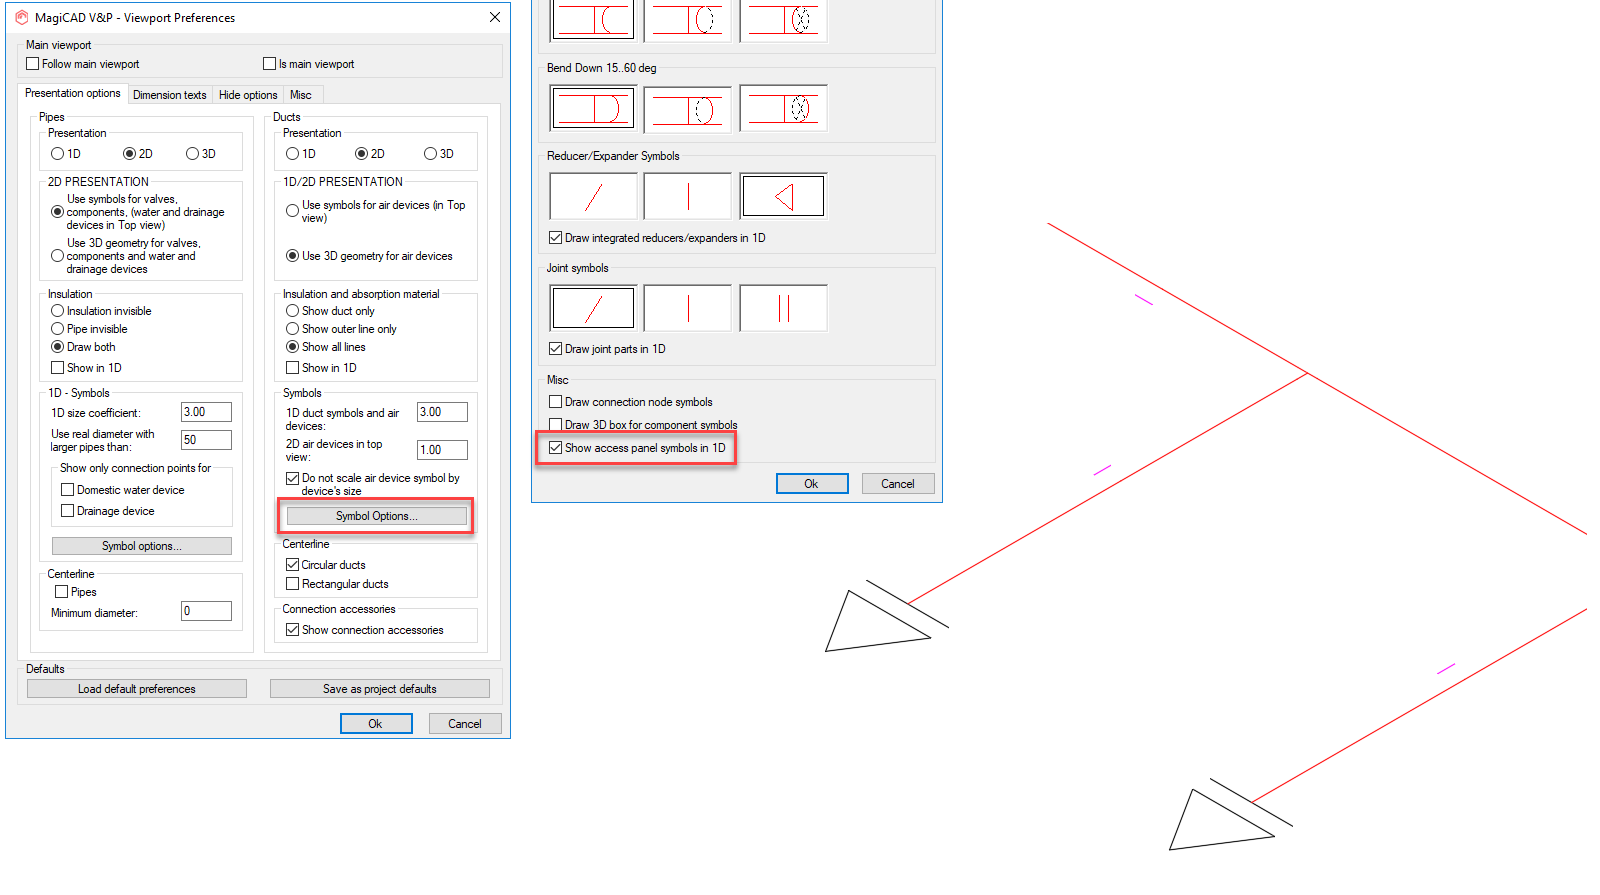 New features - MagiCAD 2019 UR-2 for AutoCAD - MagiCAD